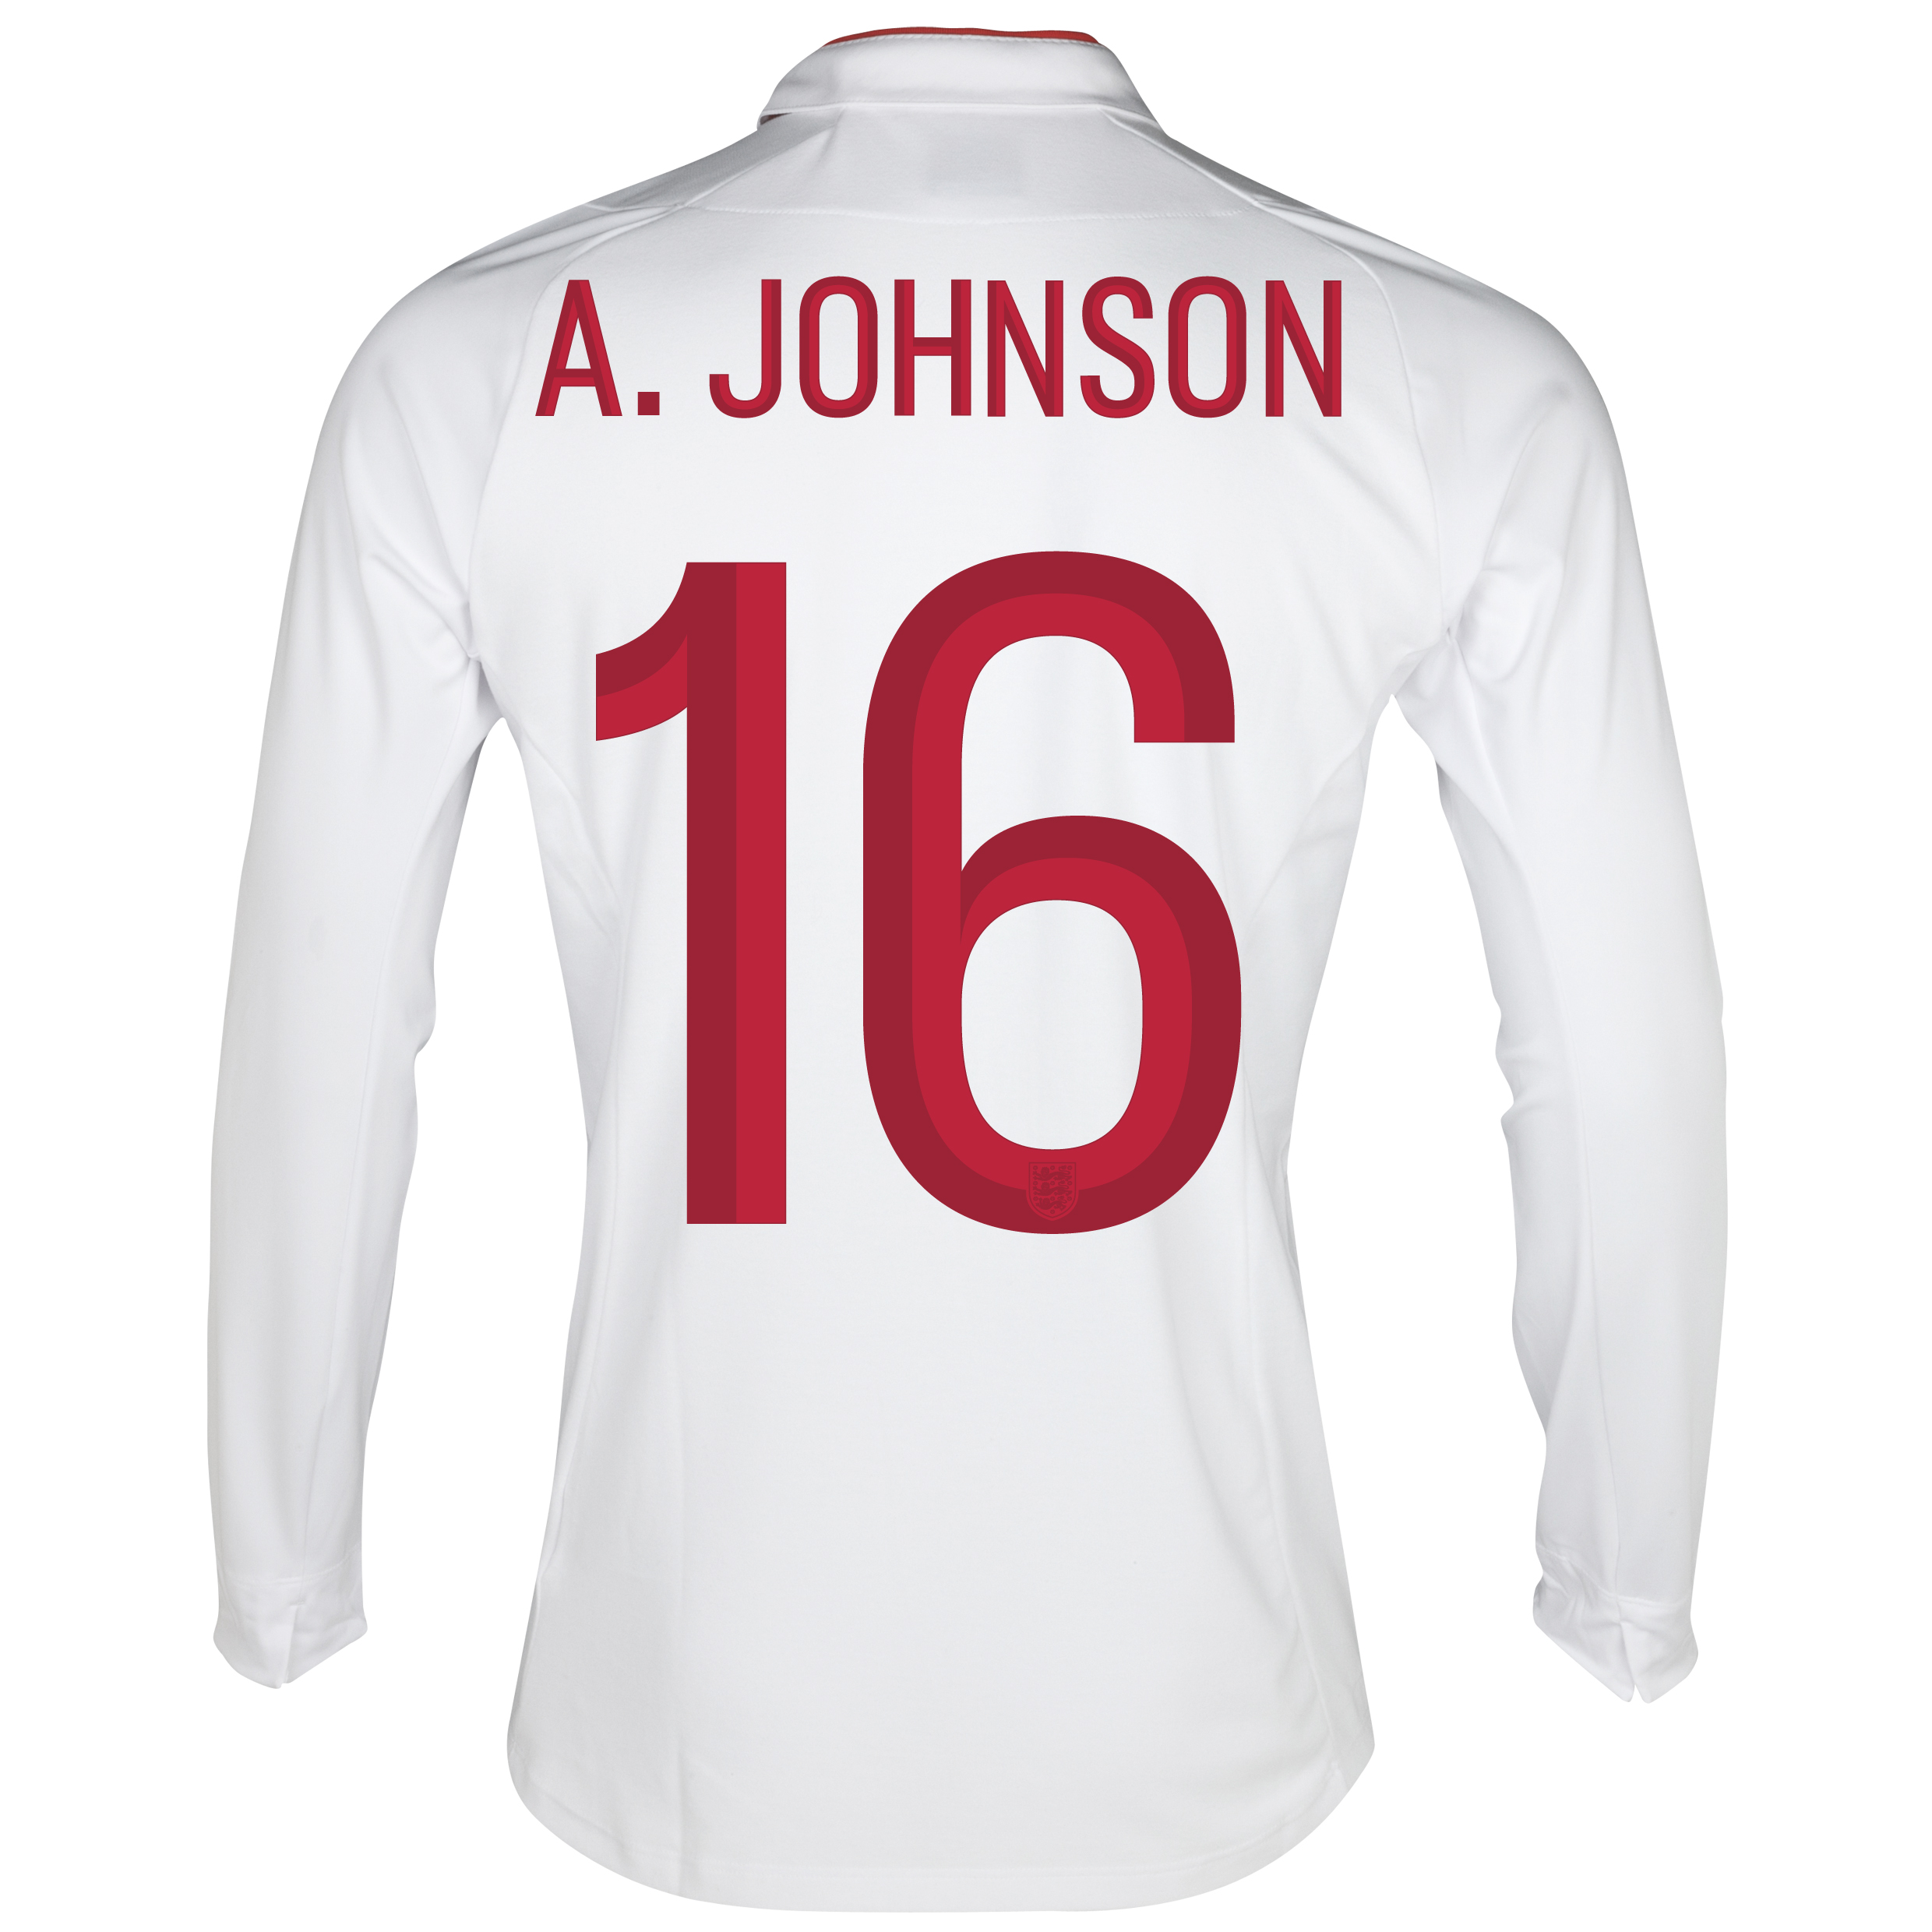 England Home Shirt 2012/13 - Long Sleeve - Boys with A.Johnson 16 printing